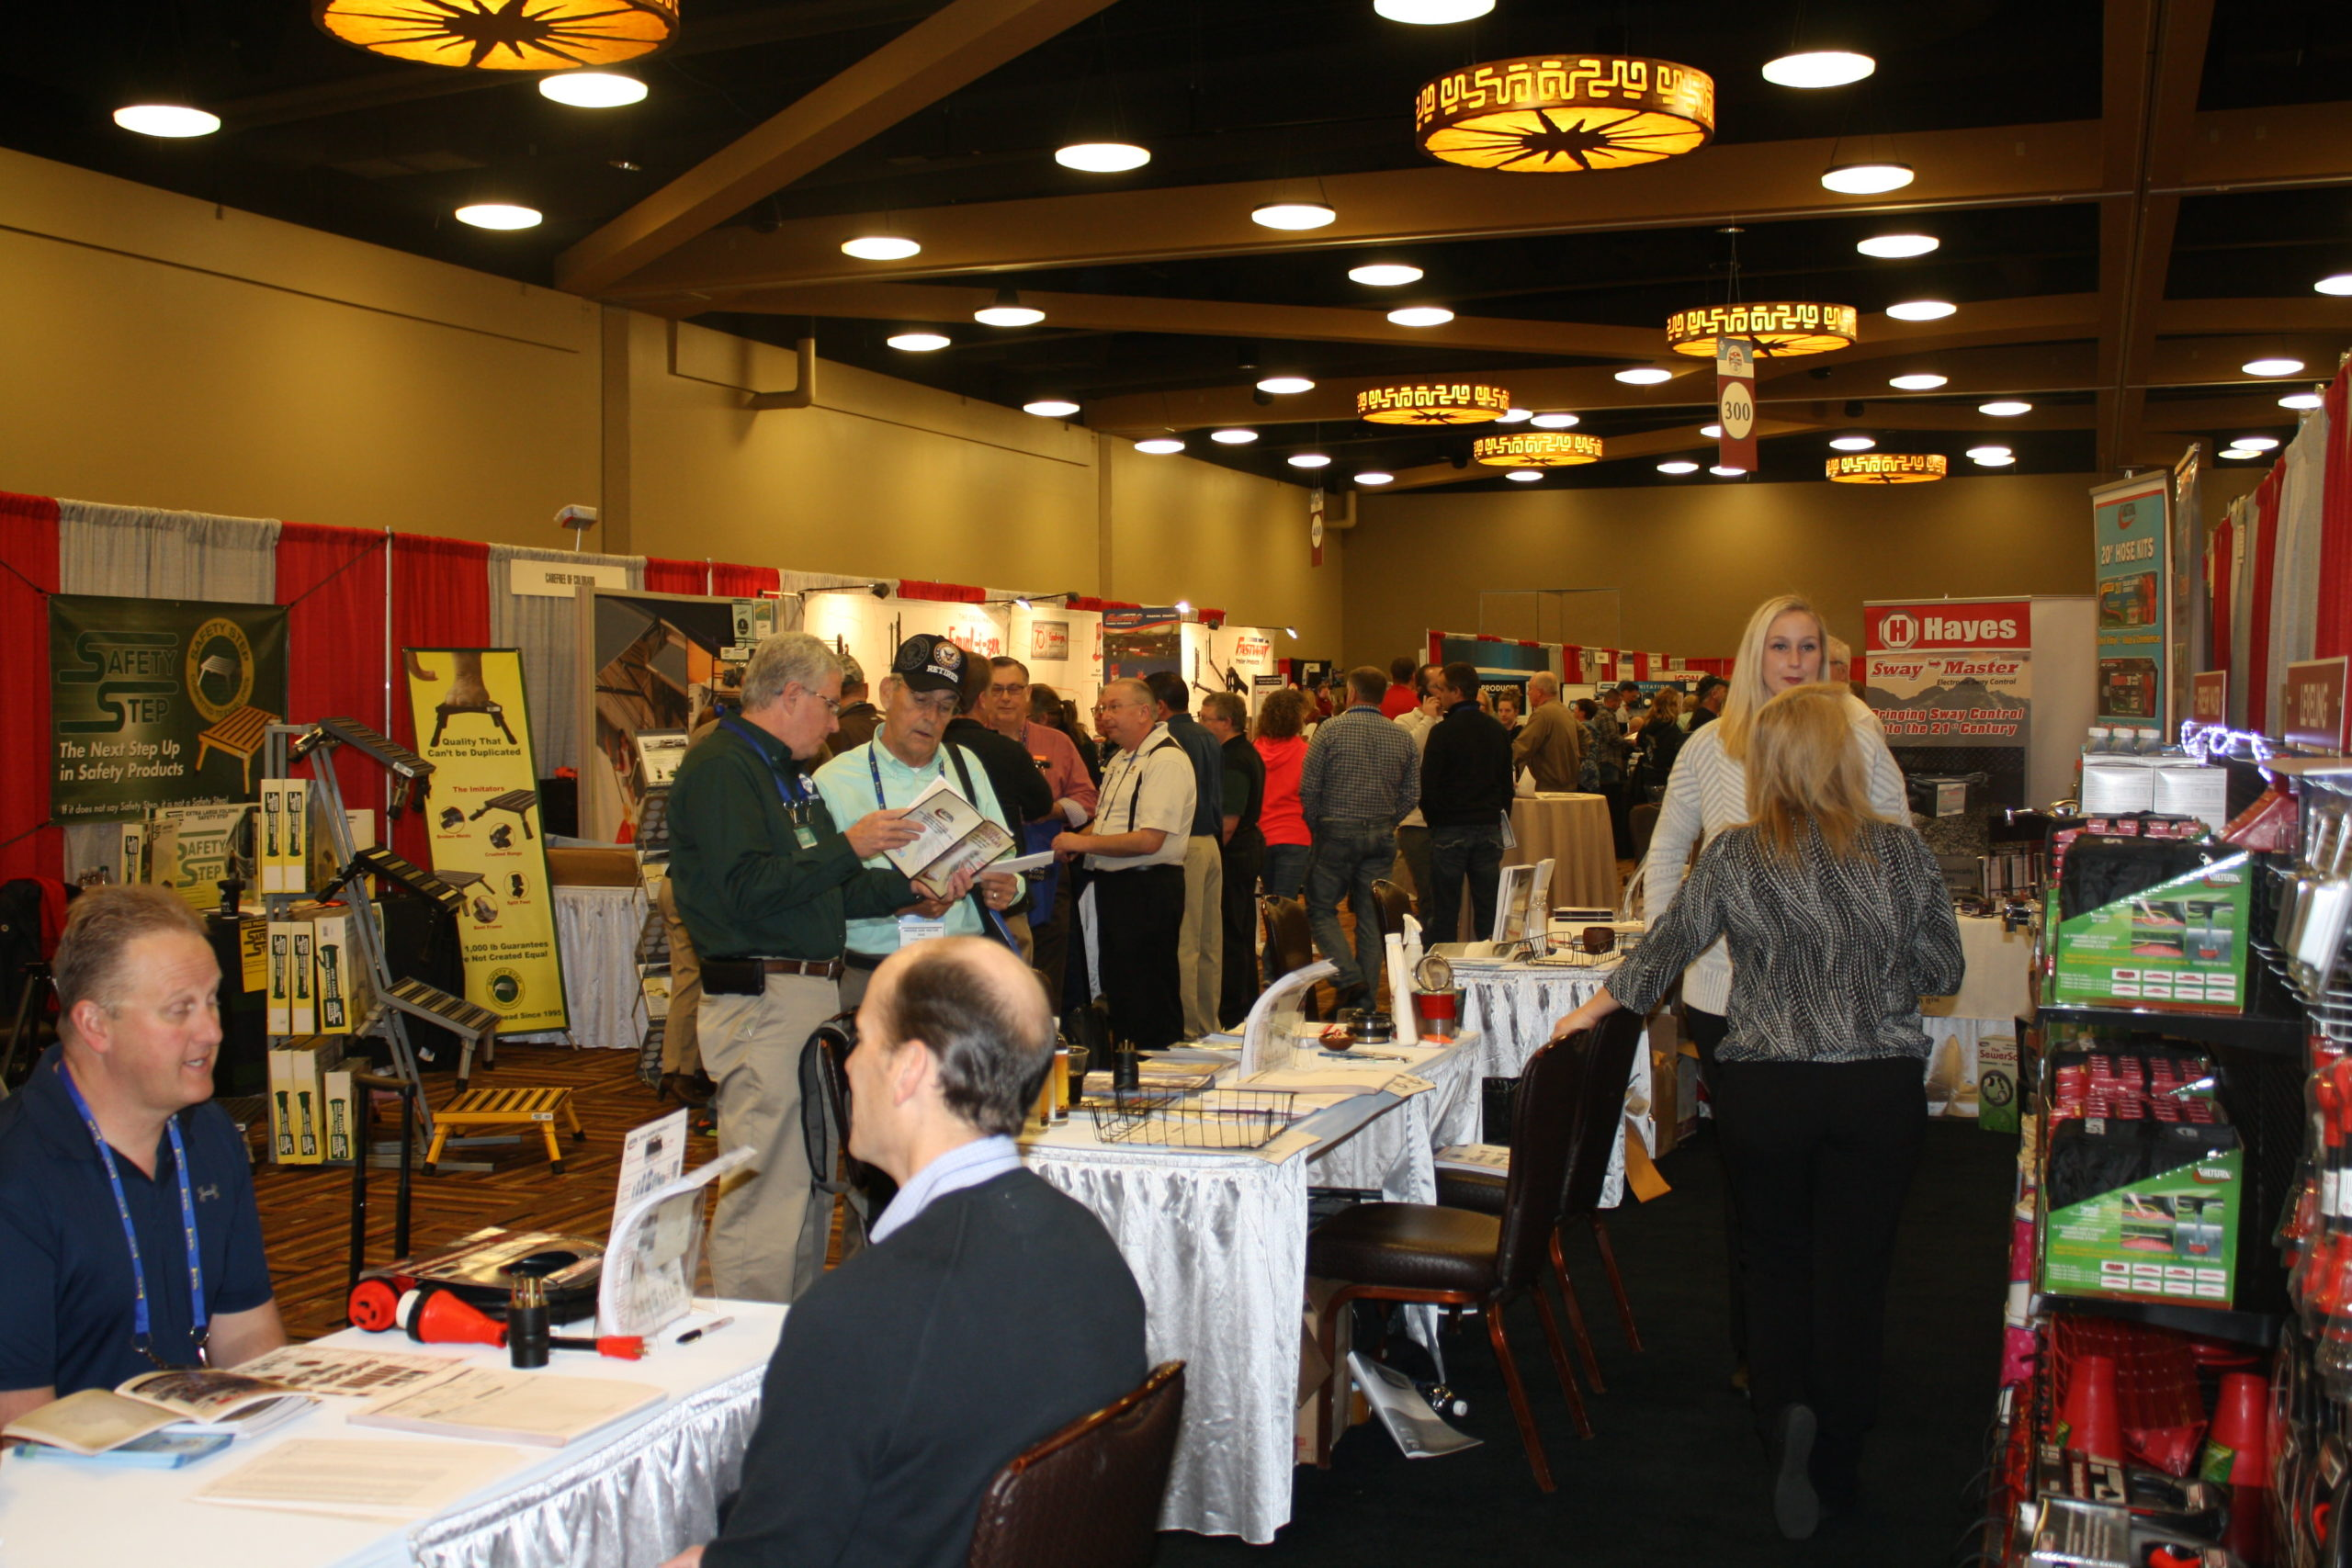 Land 'N' Sea/Bell has expanded its footprint over the past year, and readies an wider lineup of products for its January show.